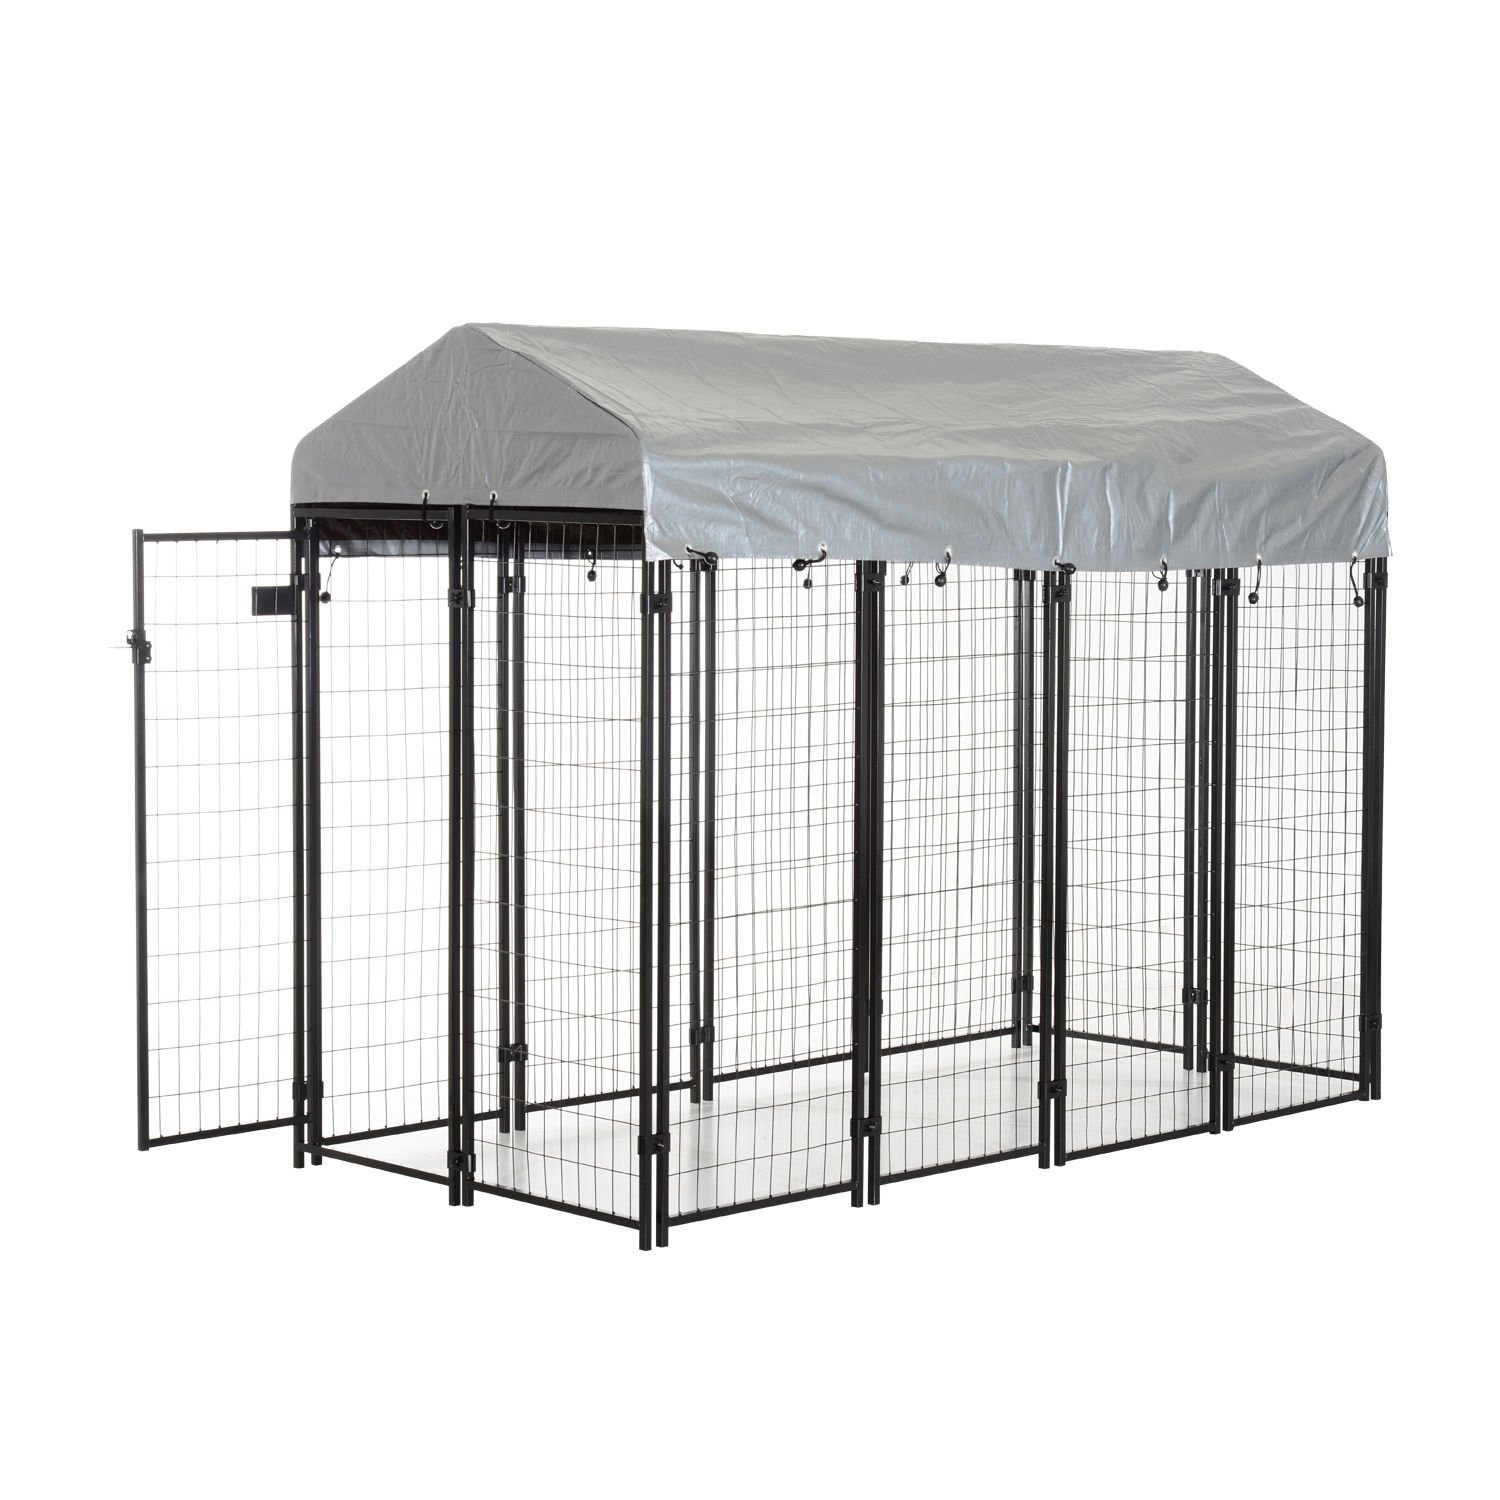 PawHut 97'' x 46'' Outdoor Galvanized Metal Dog Kennel Playpen with UV and Water Resistant Tarp Cover by PawHut (Image #2)